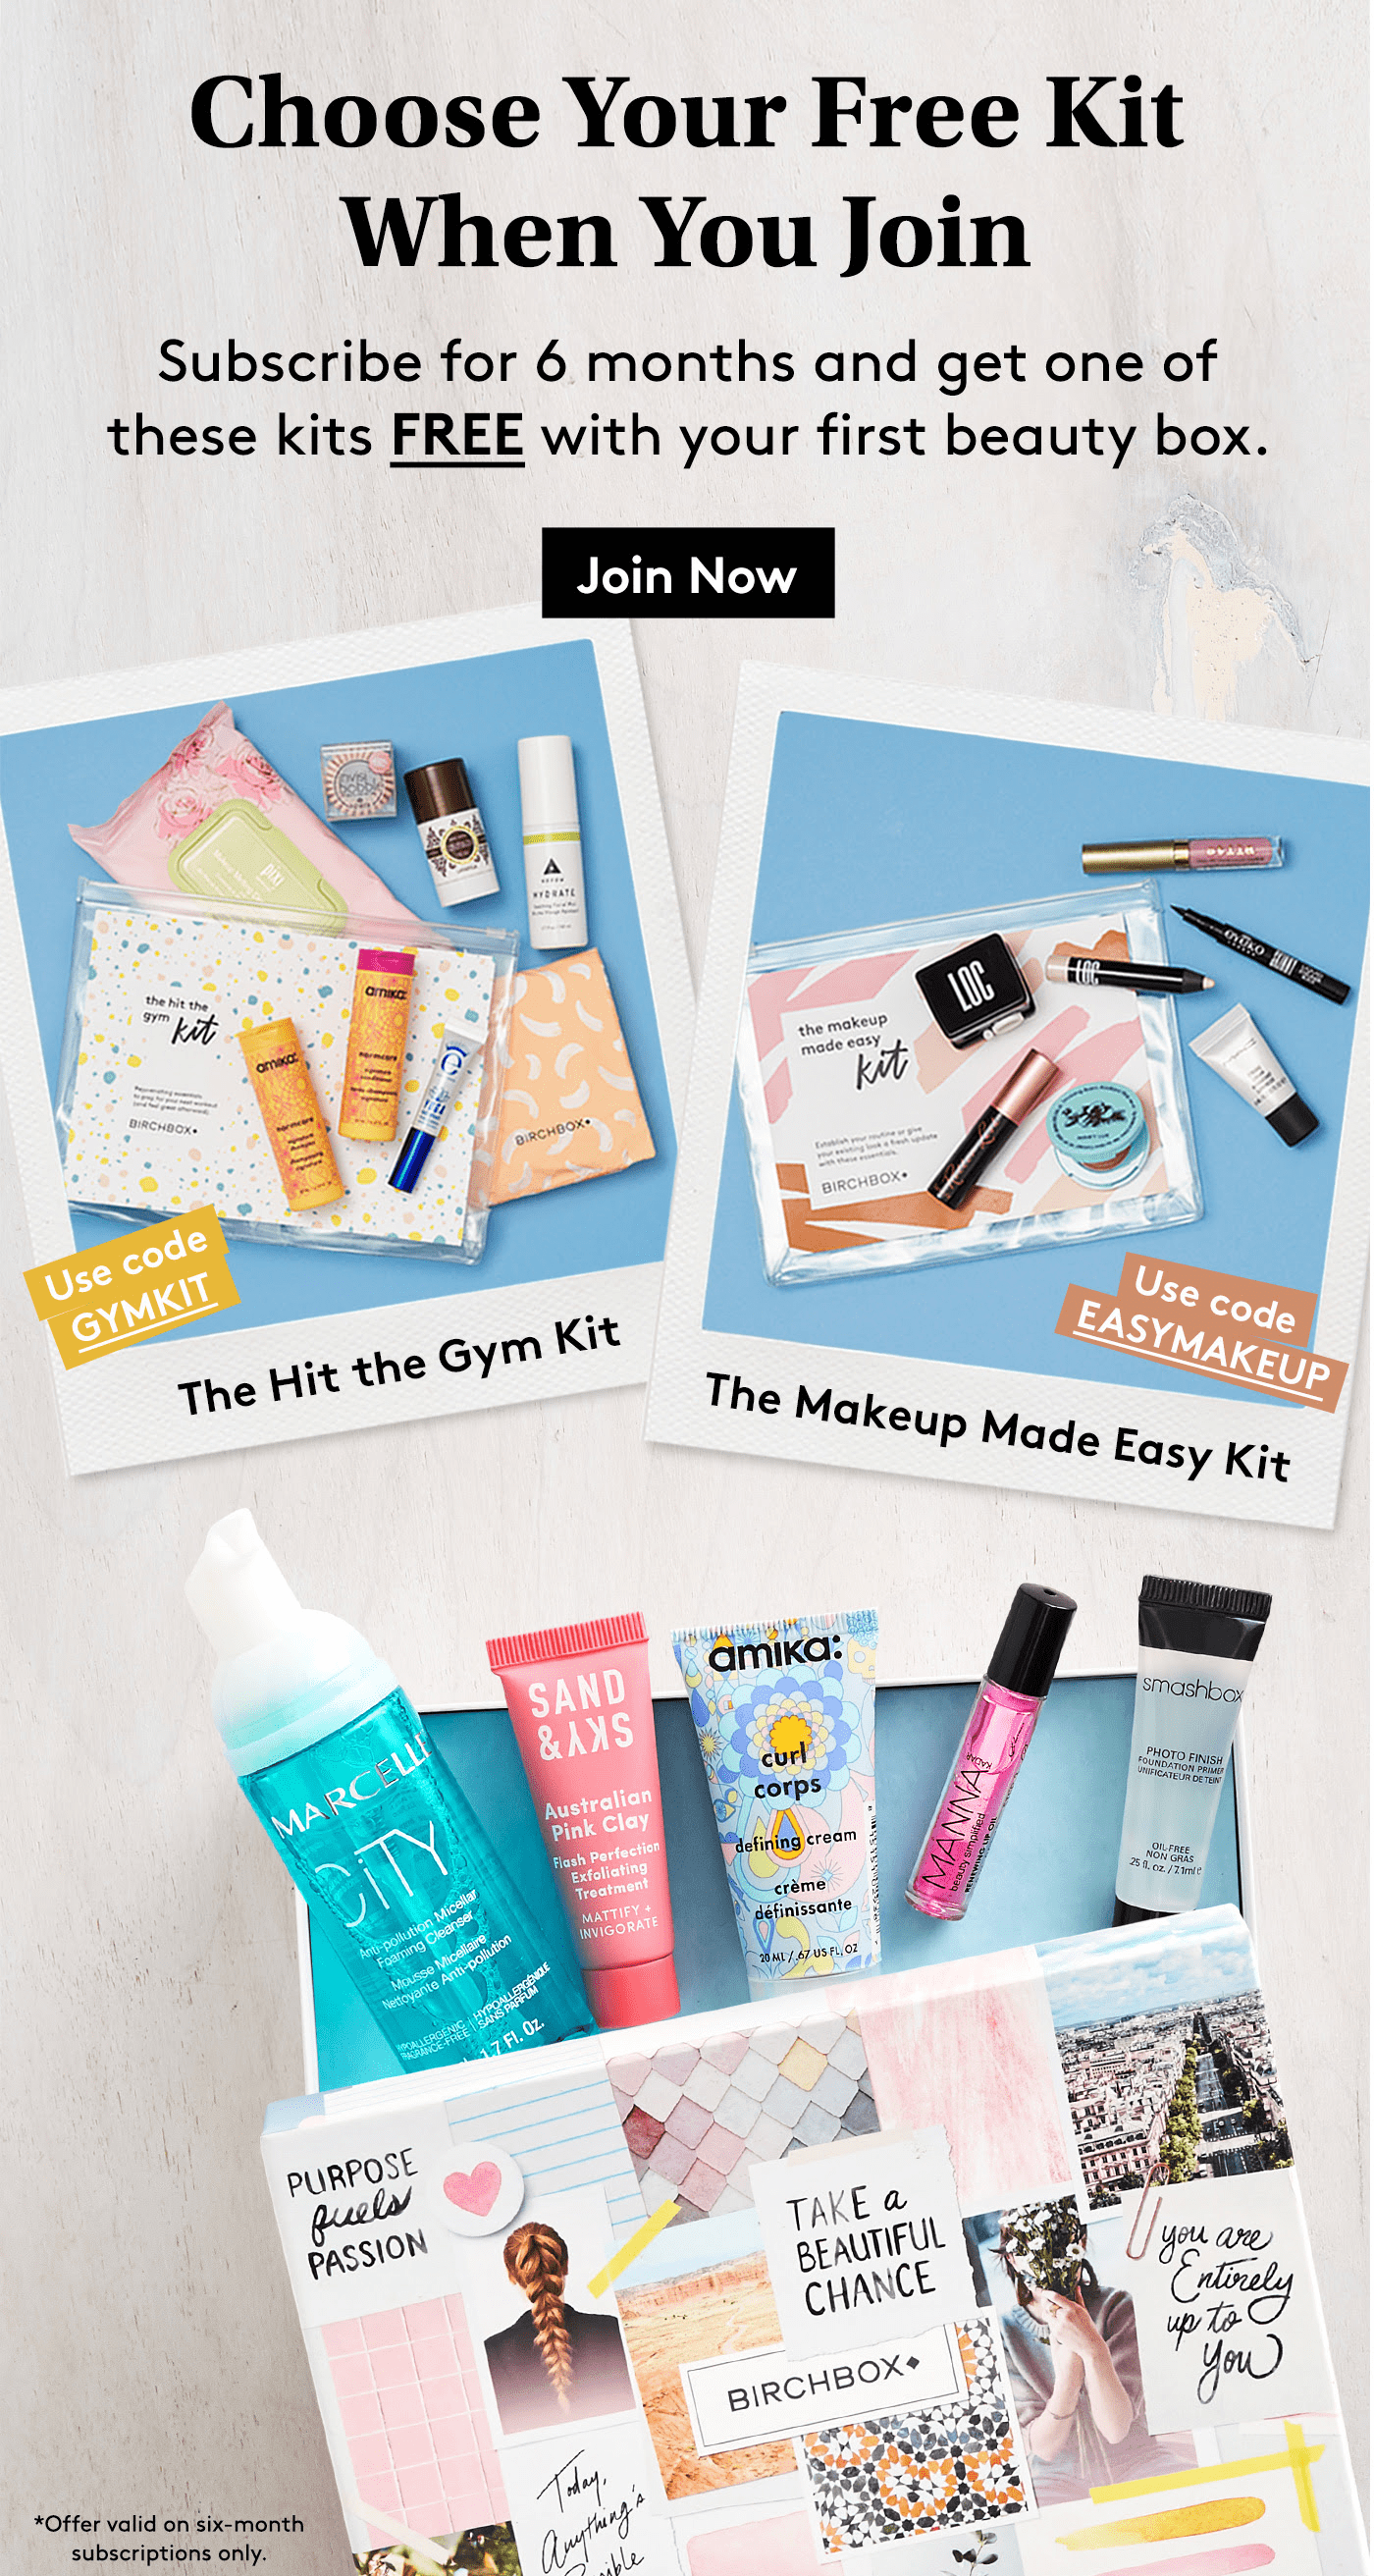 Birchbox Coupon: Get the Hit the Gym Kit or Makeup Made Easy Kit for FREE!